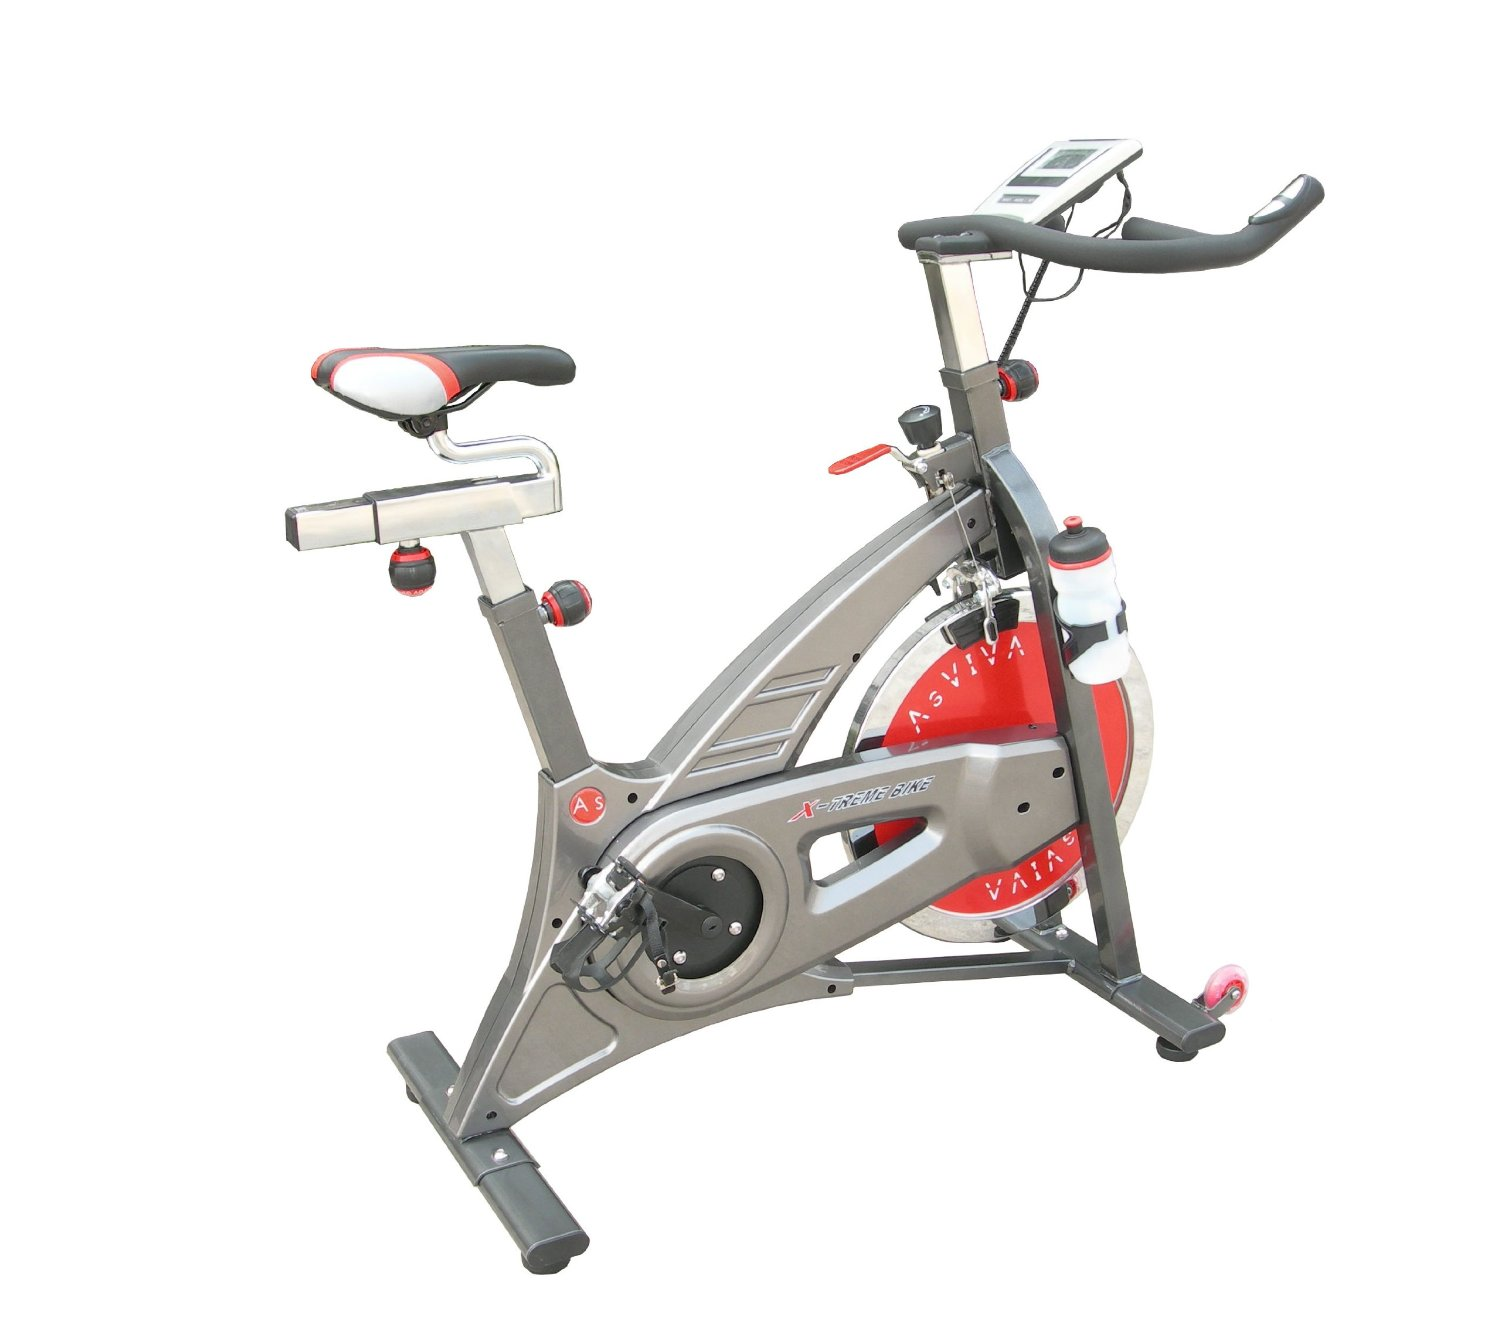 AsViva Real Indoor Cycle Cardio VII S7